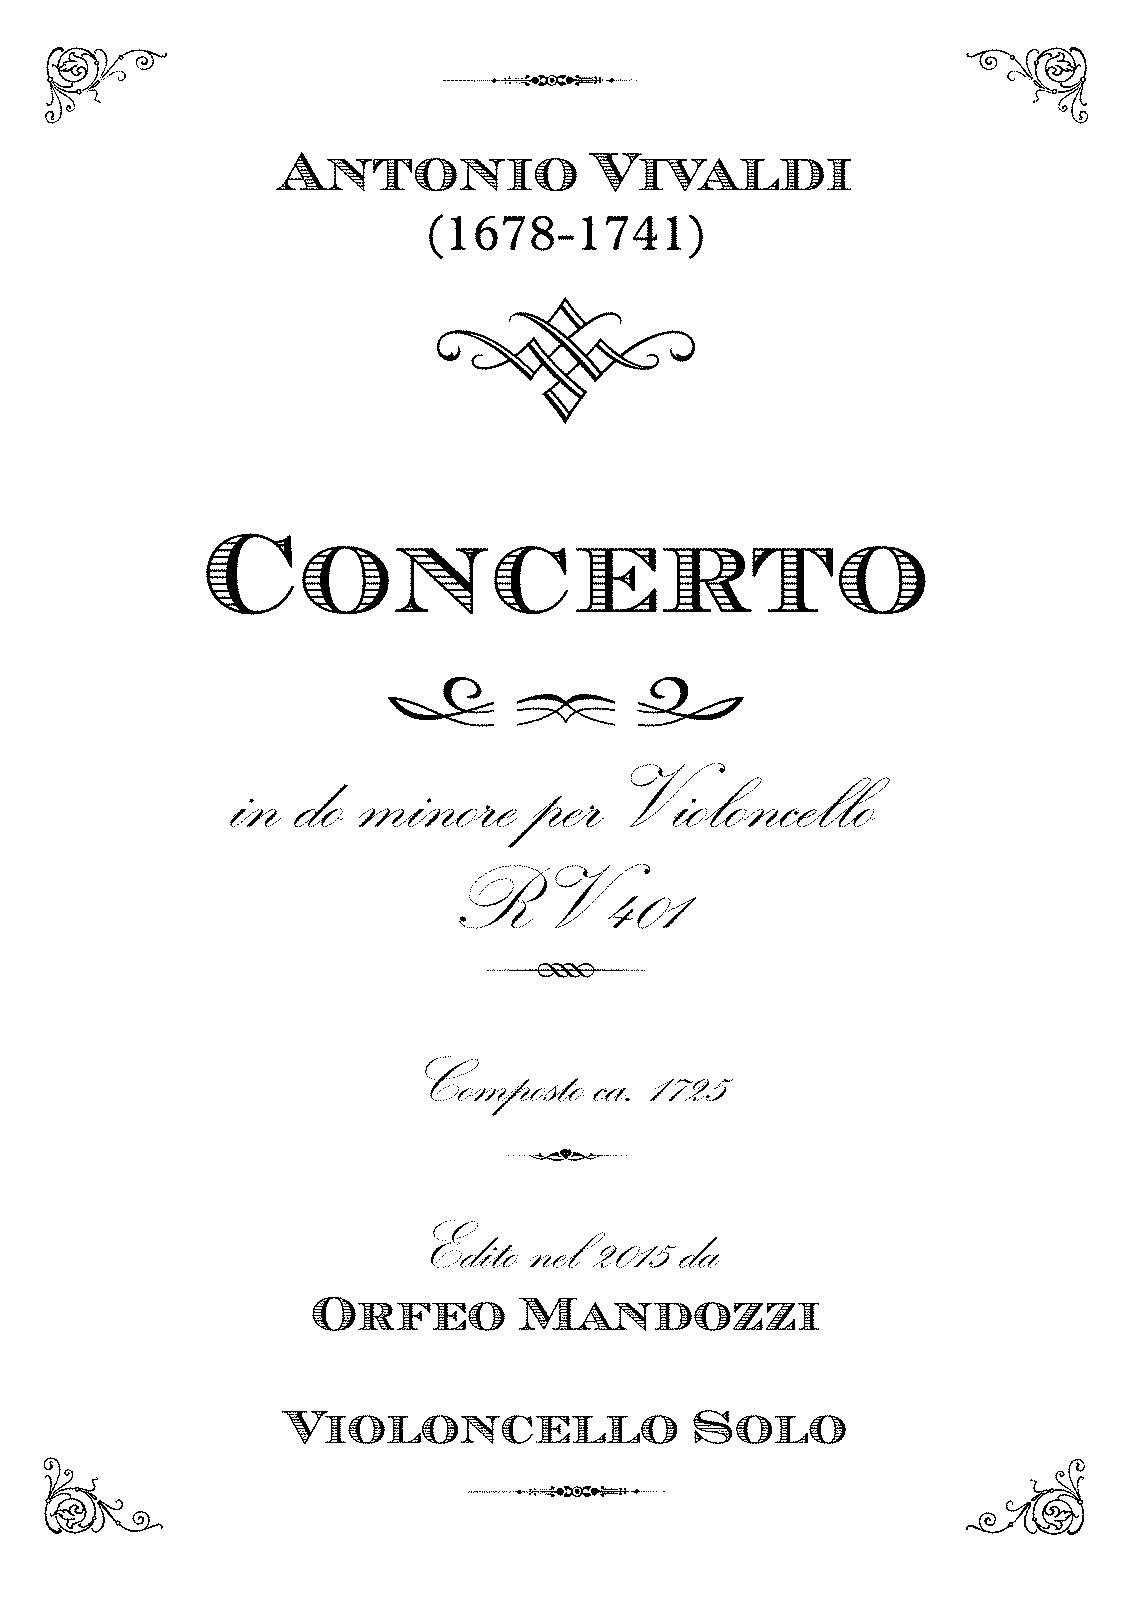 PMLP431310-Vivaldi Cello Concerto C Minor RV401 Mandozzi - Violoncello solo.pdf